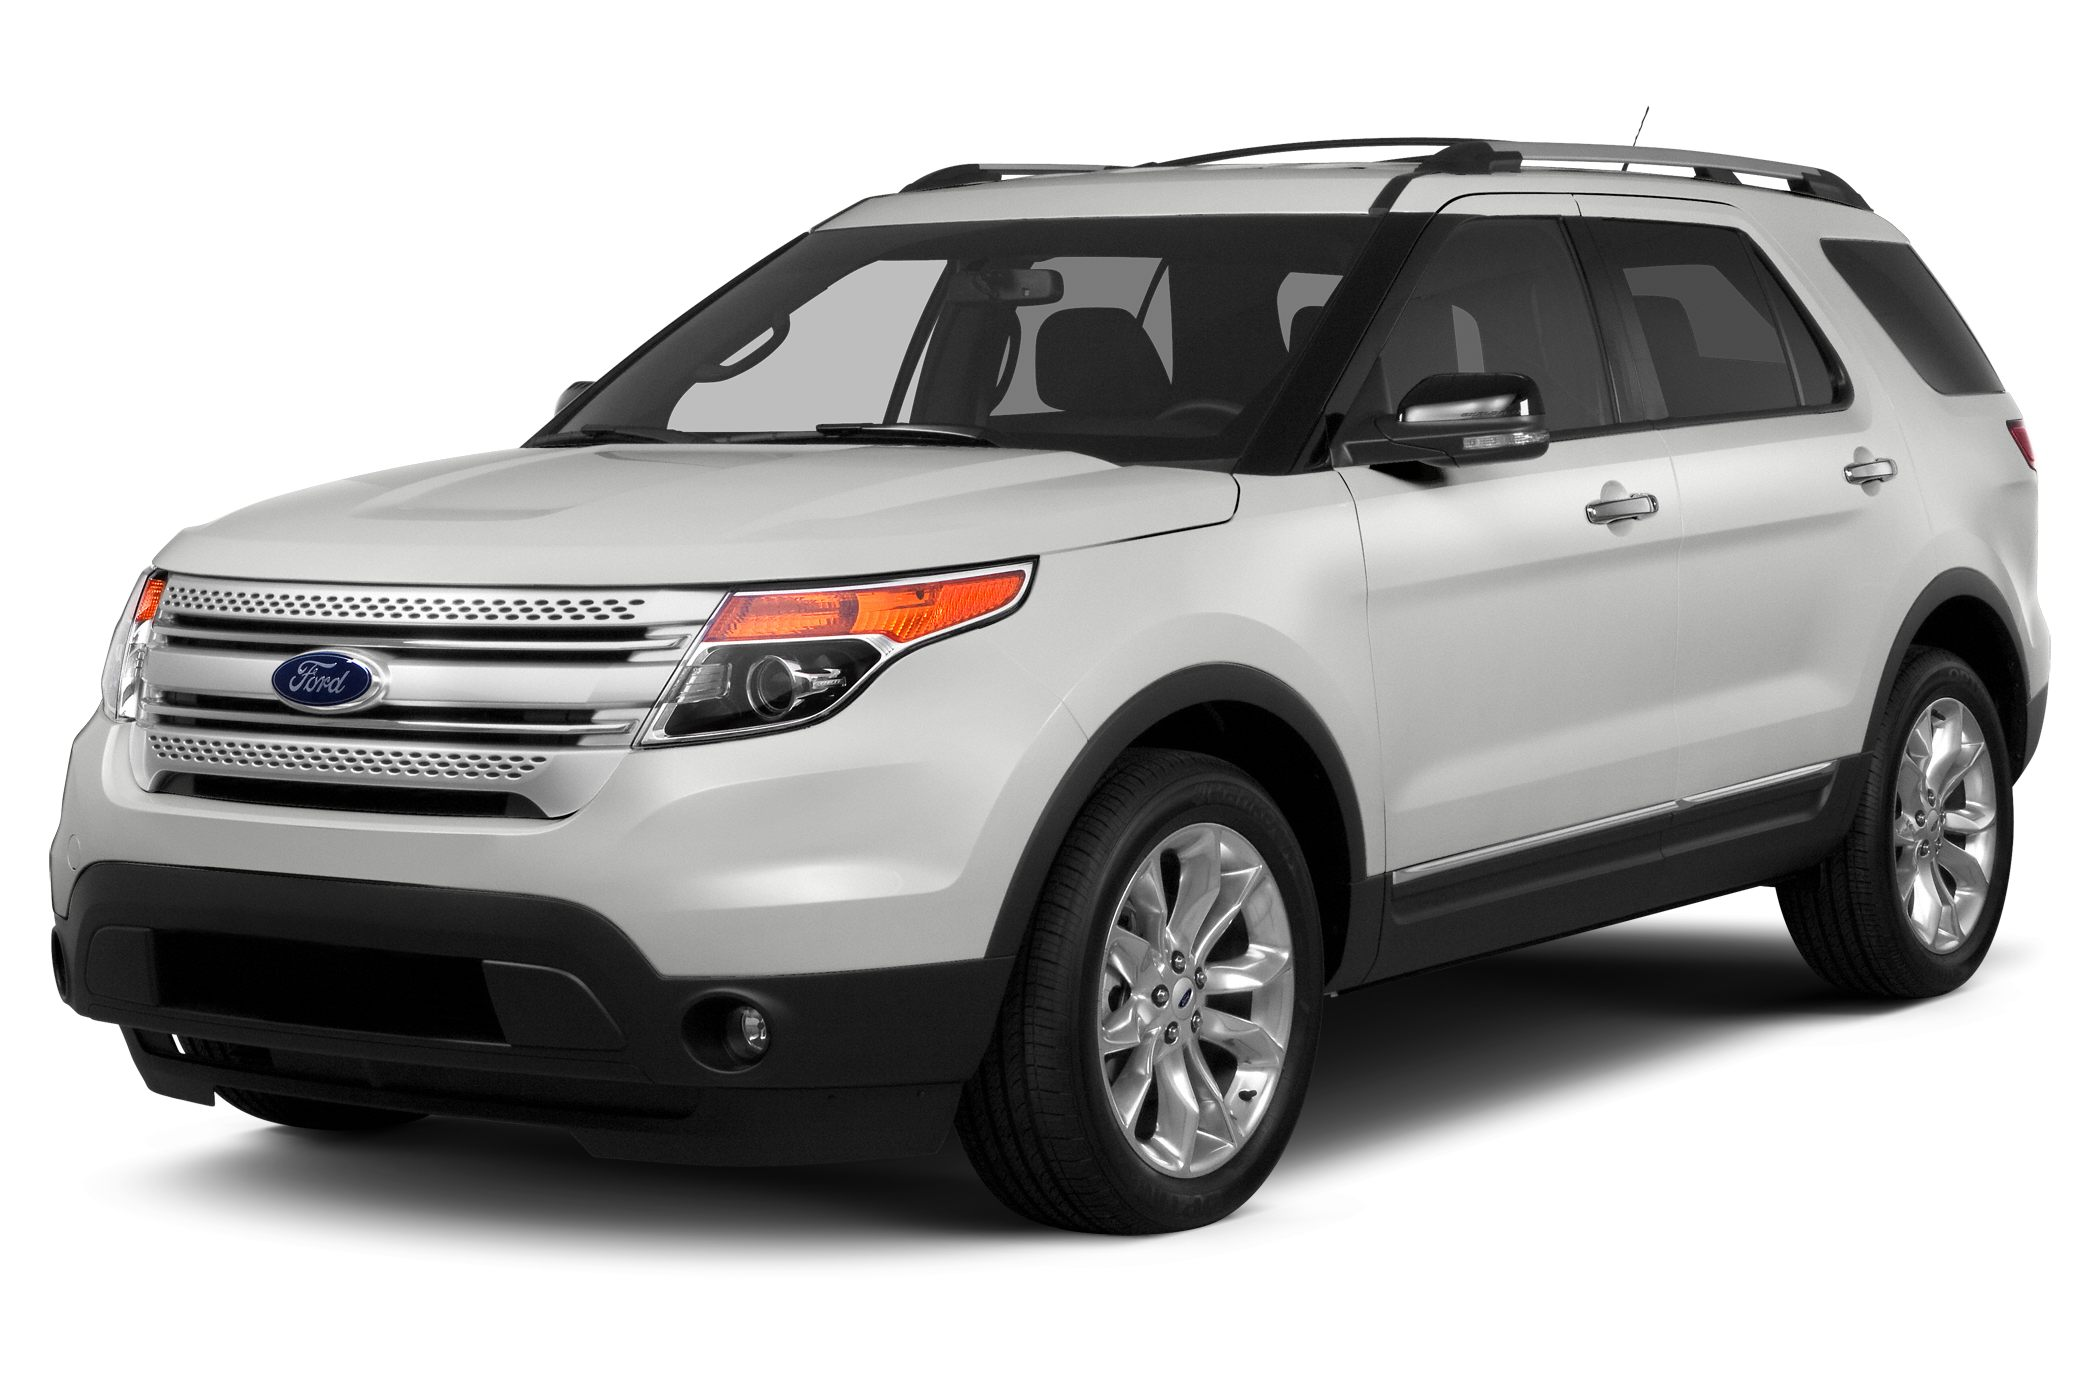 2015 Ford Explorer XLT SUV for sale in Detroit for $38,633 with 9 miles